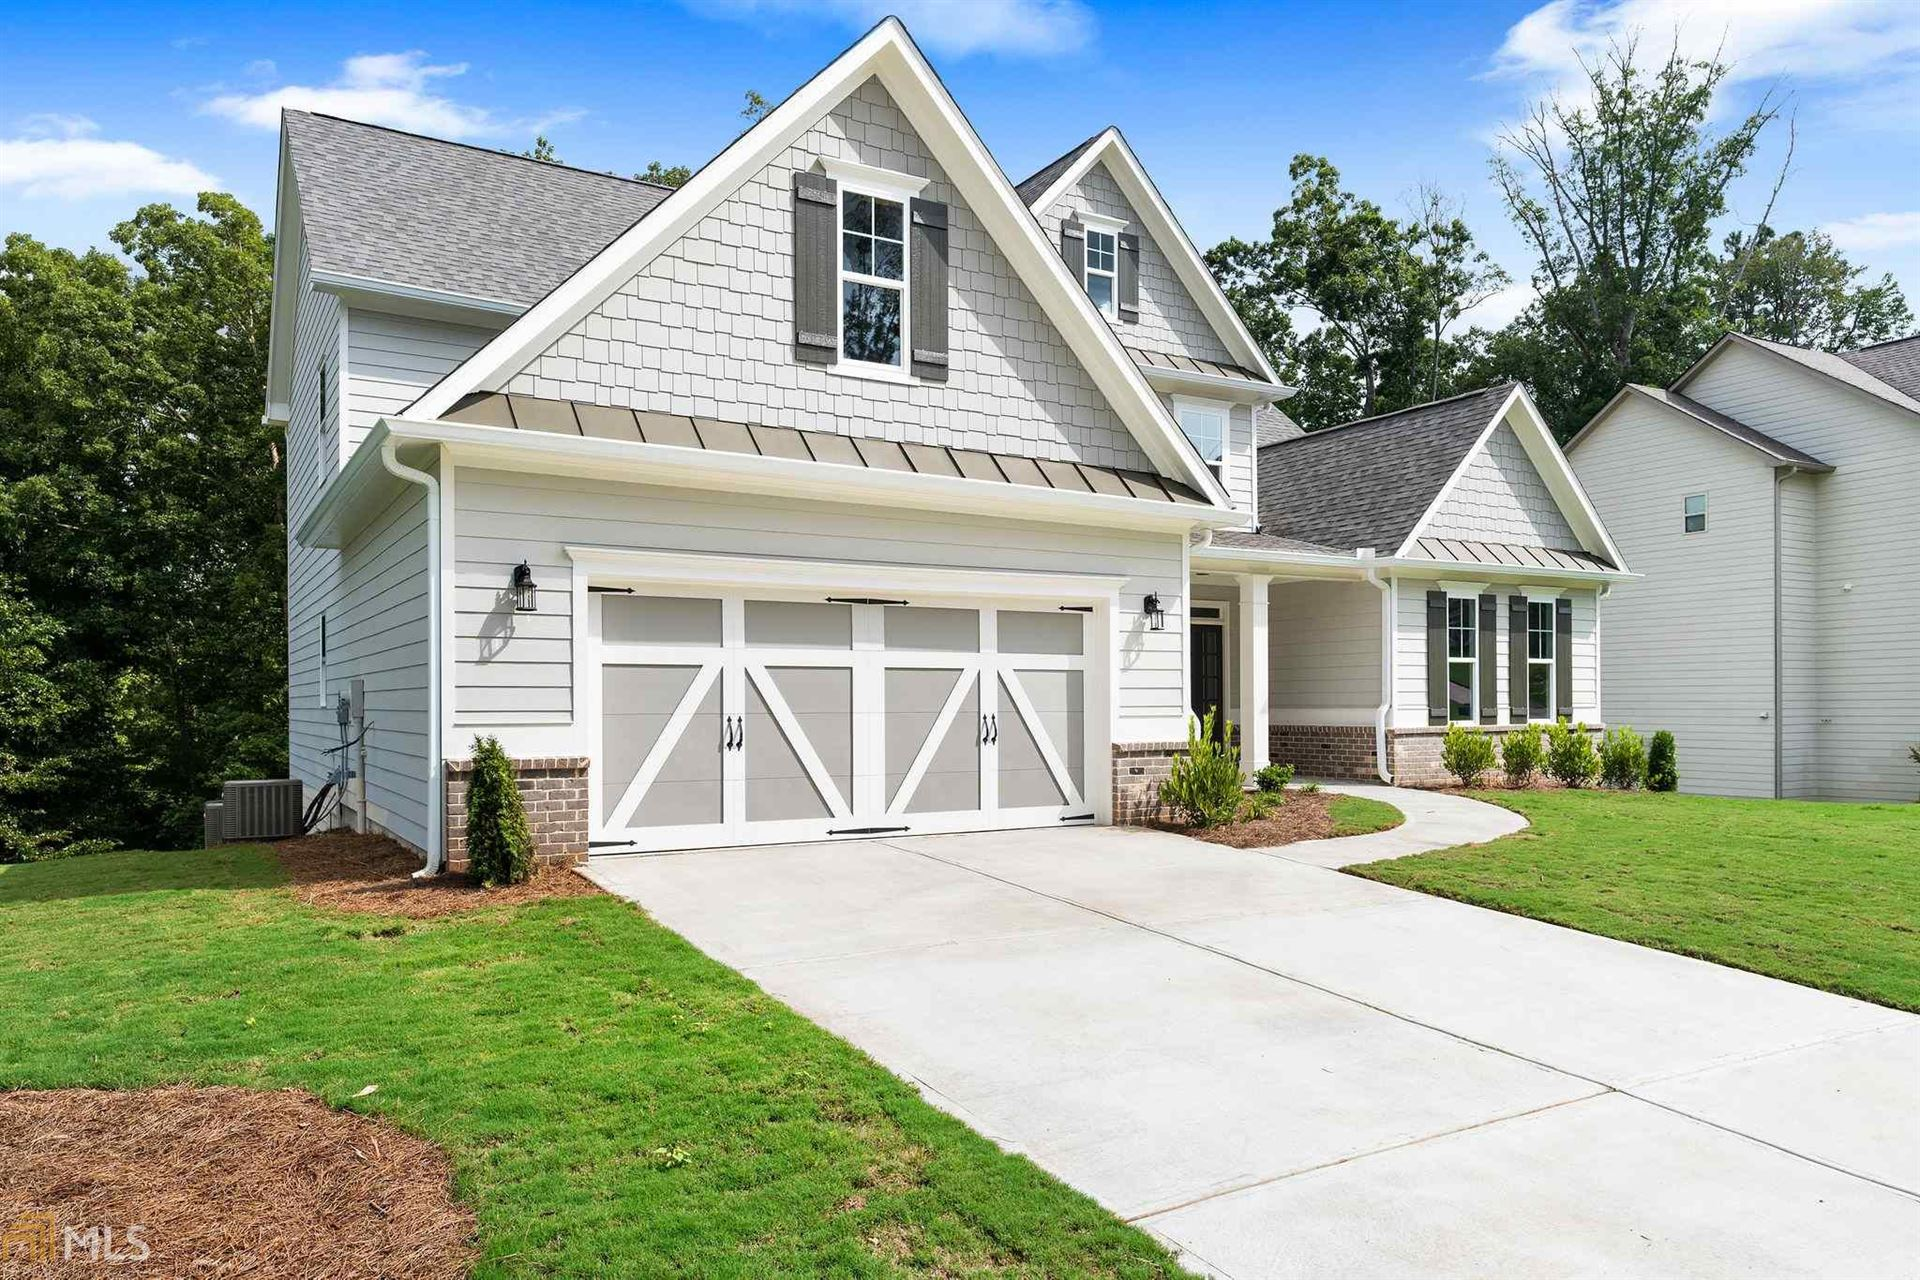 297 Willow Pointe Dr, Dallas, GA 30157 - #: 8811511